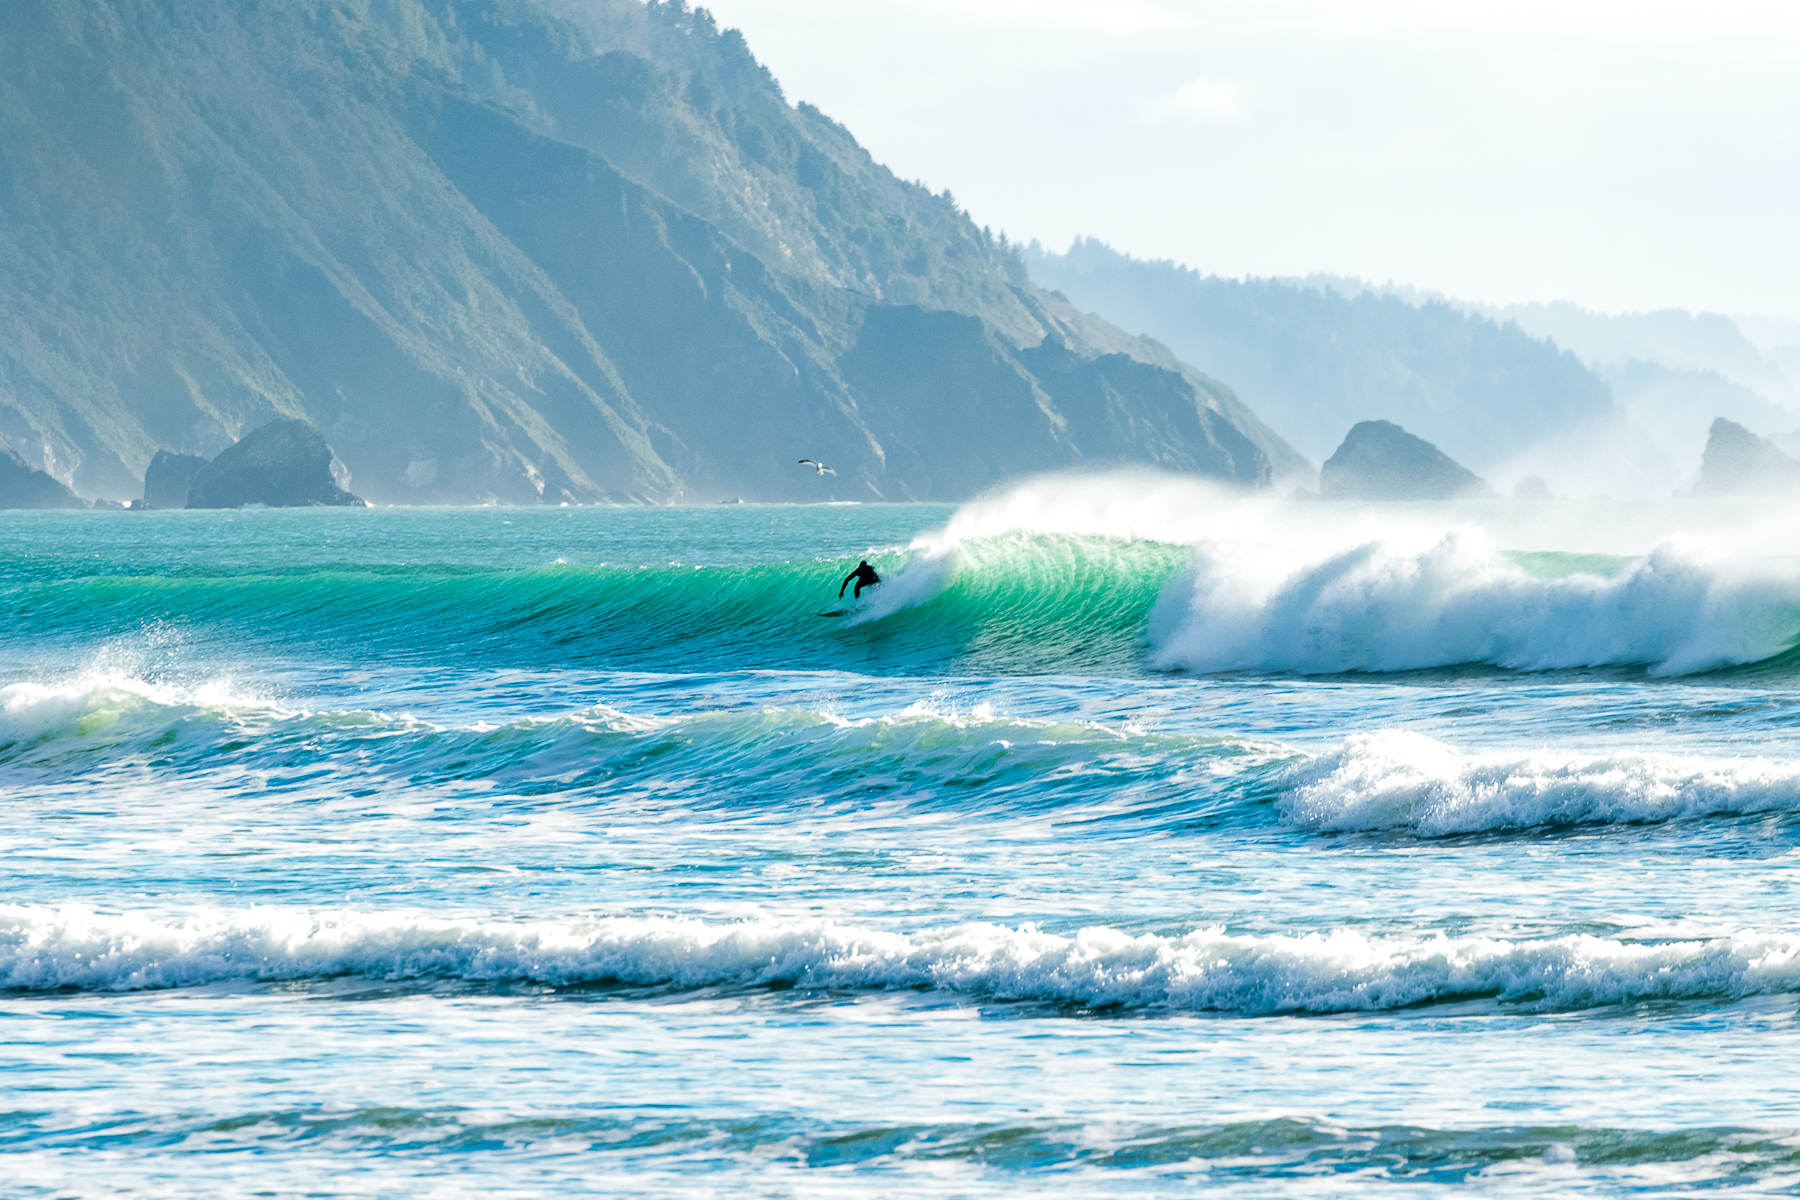 tofino_surf_photography_pacific_coast_highway_Canada_Vancouver_Isand_2018.jpg